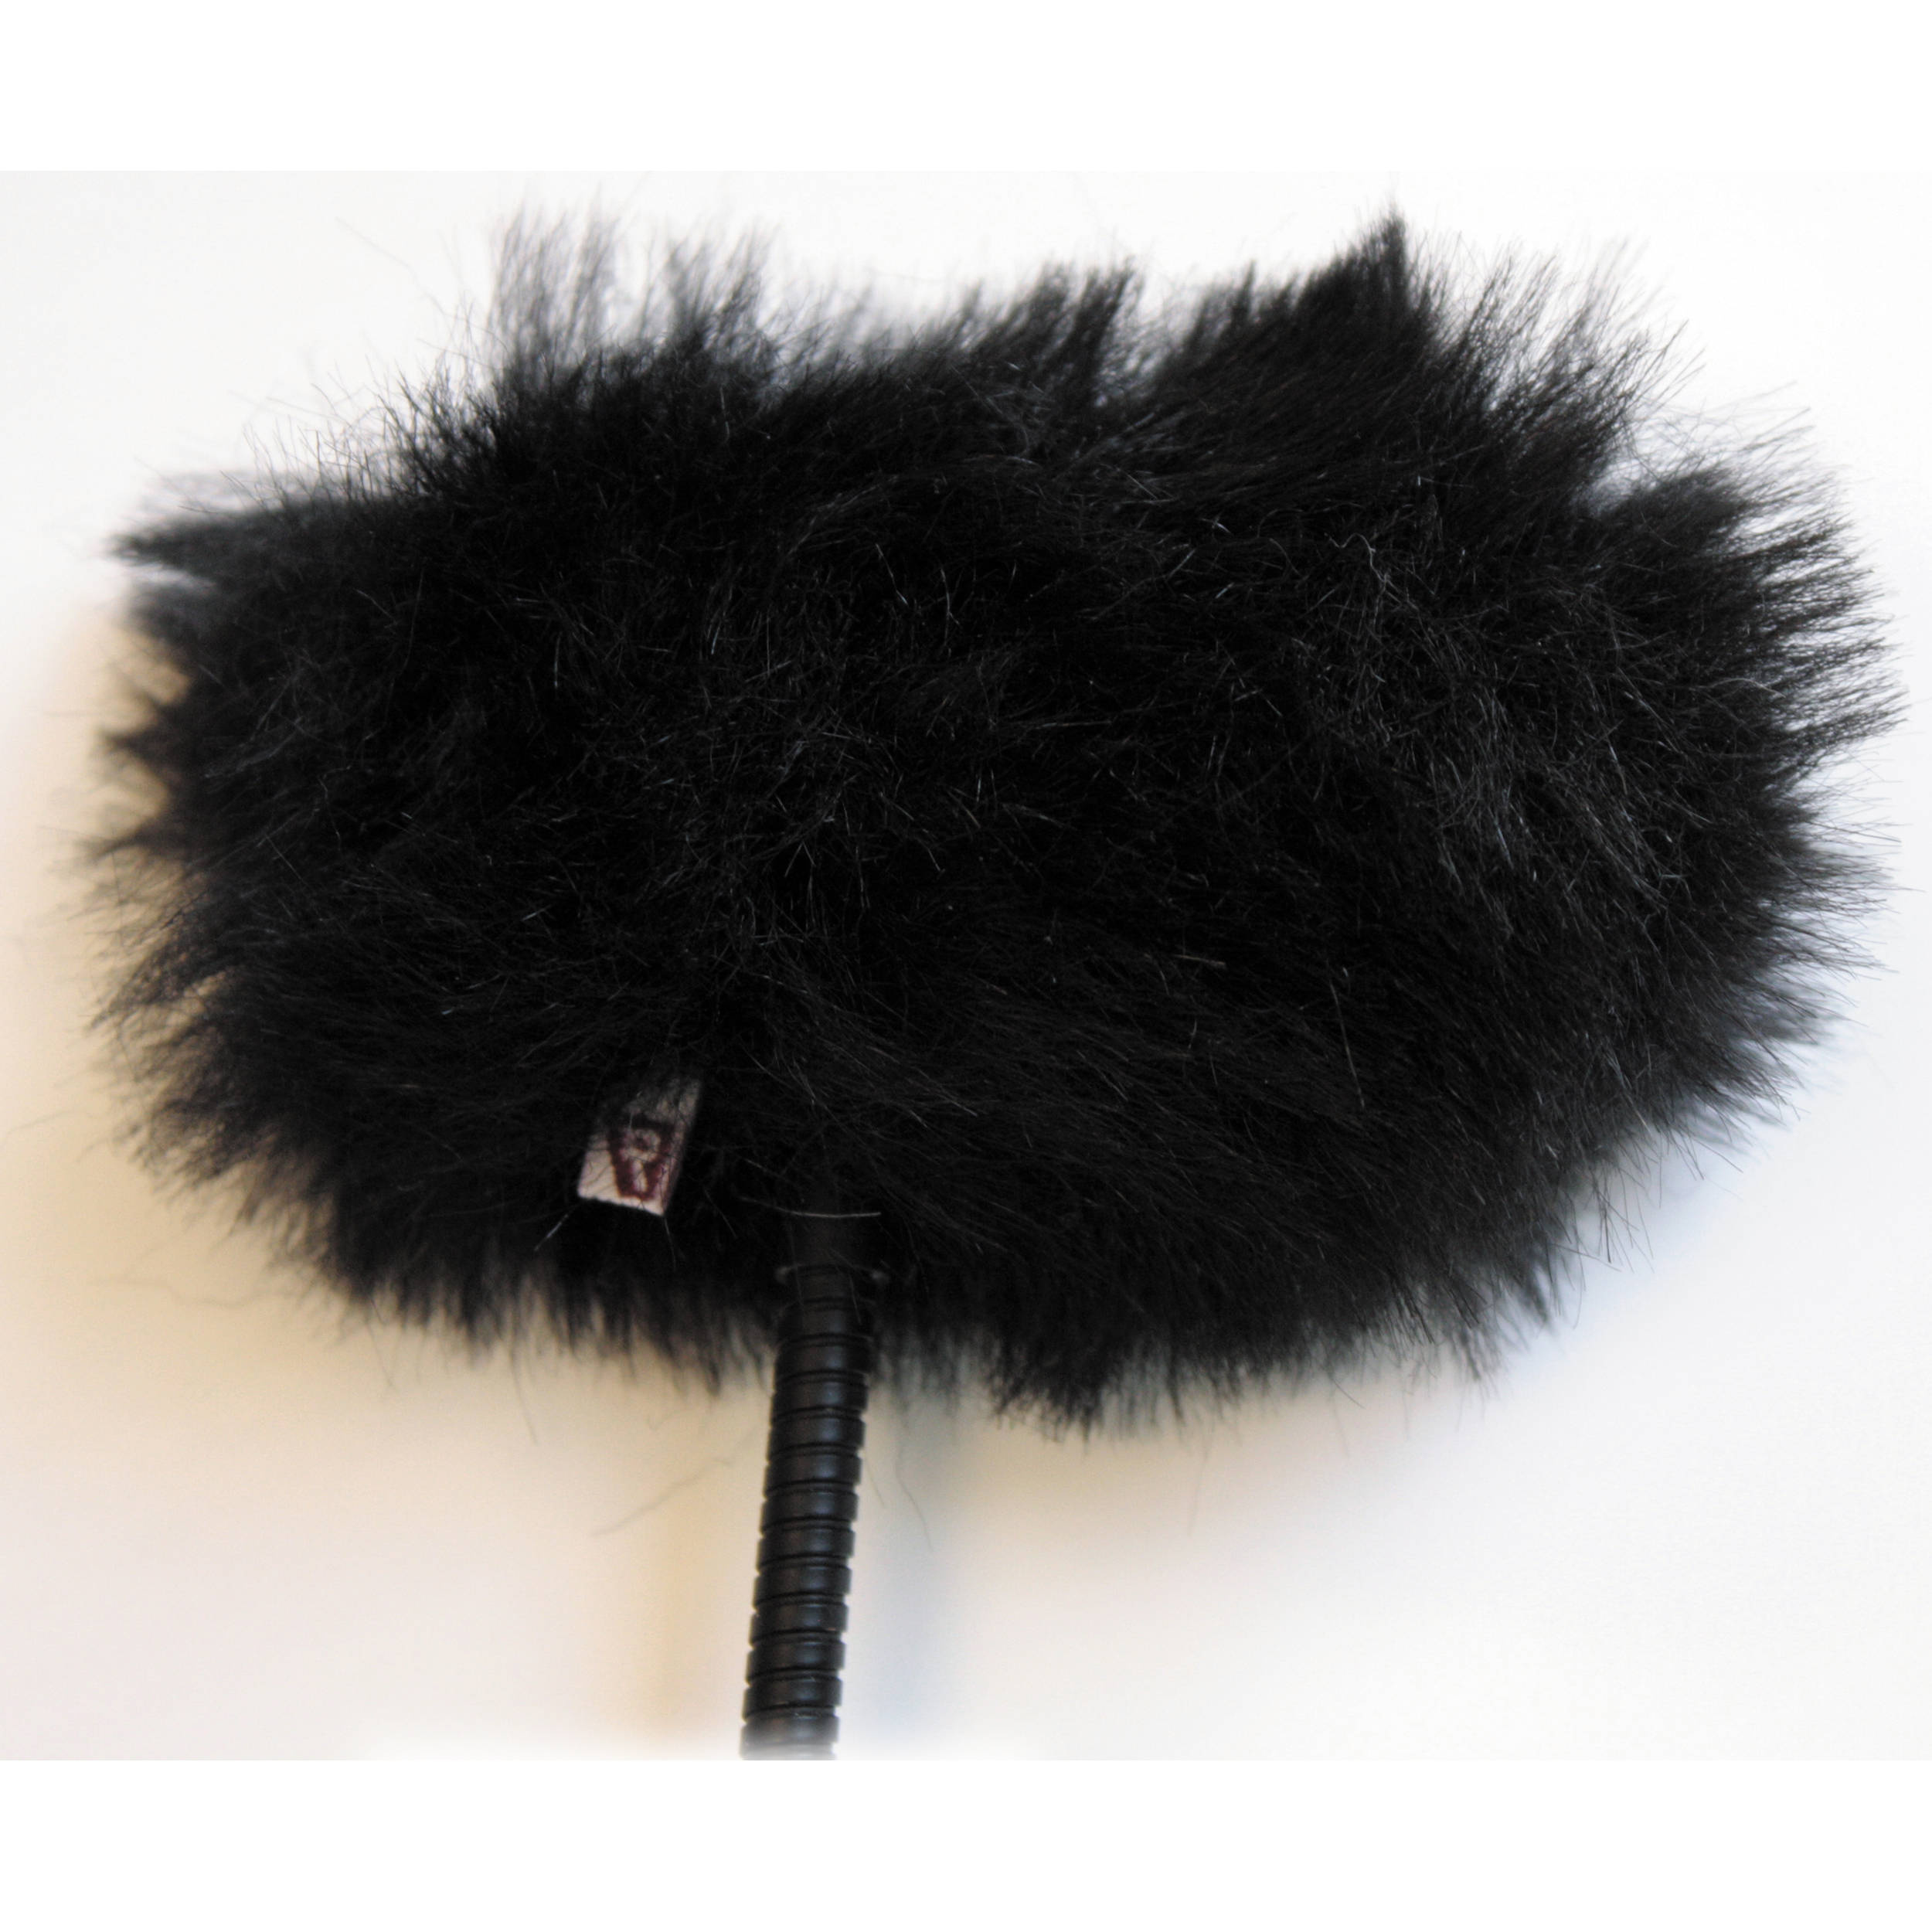 Rycote Mini Windjammer for DPA 4099